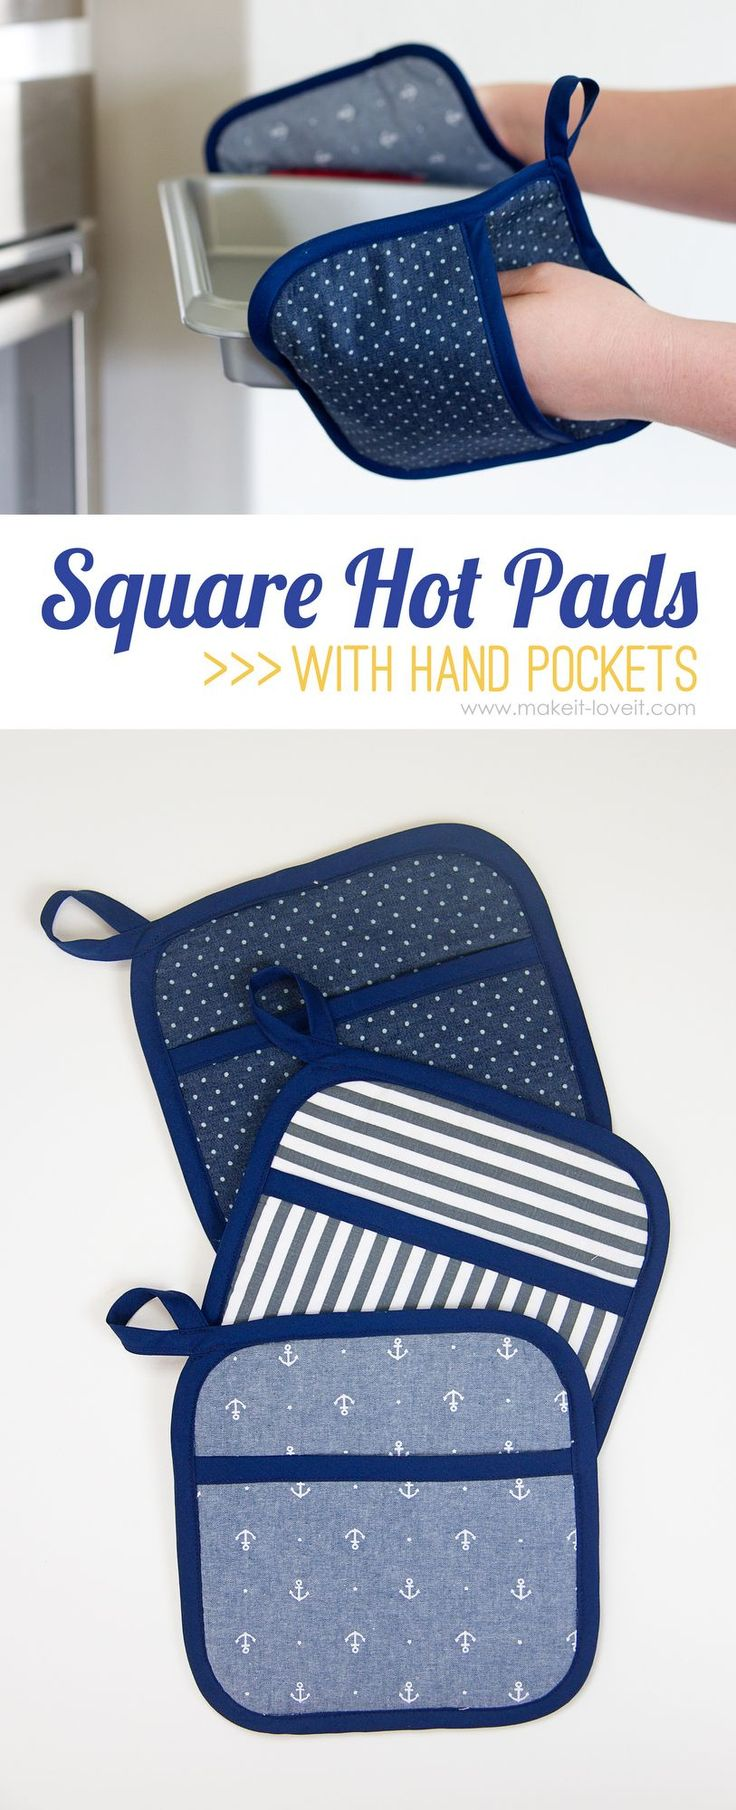 DIY Square Hot Pads...with Hand Pockets | via Make It and Love It #sleepingdiy